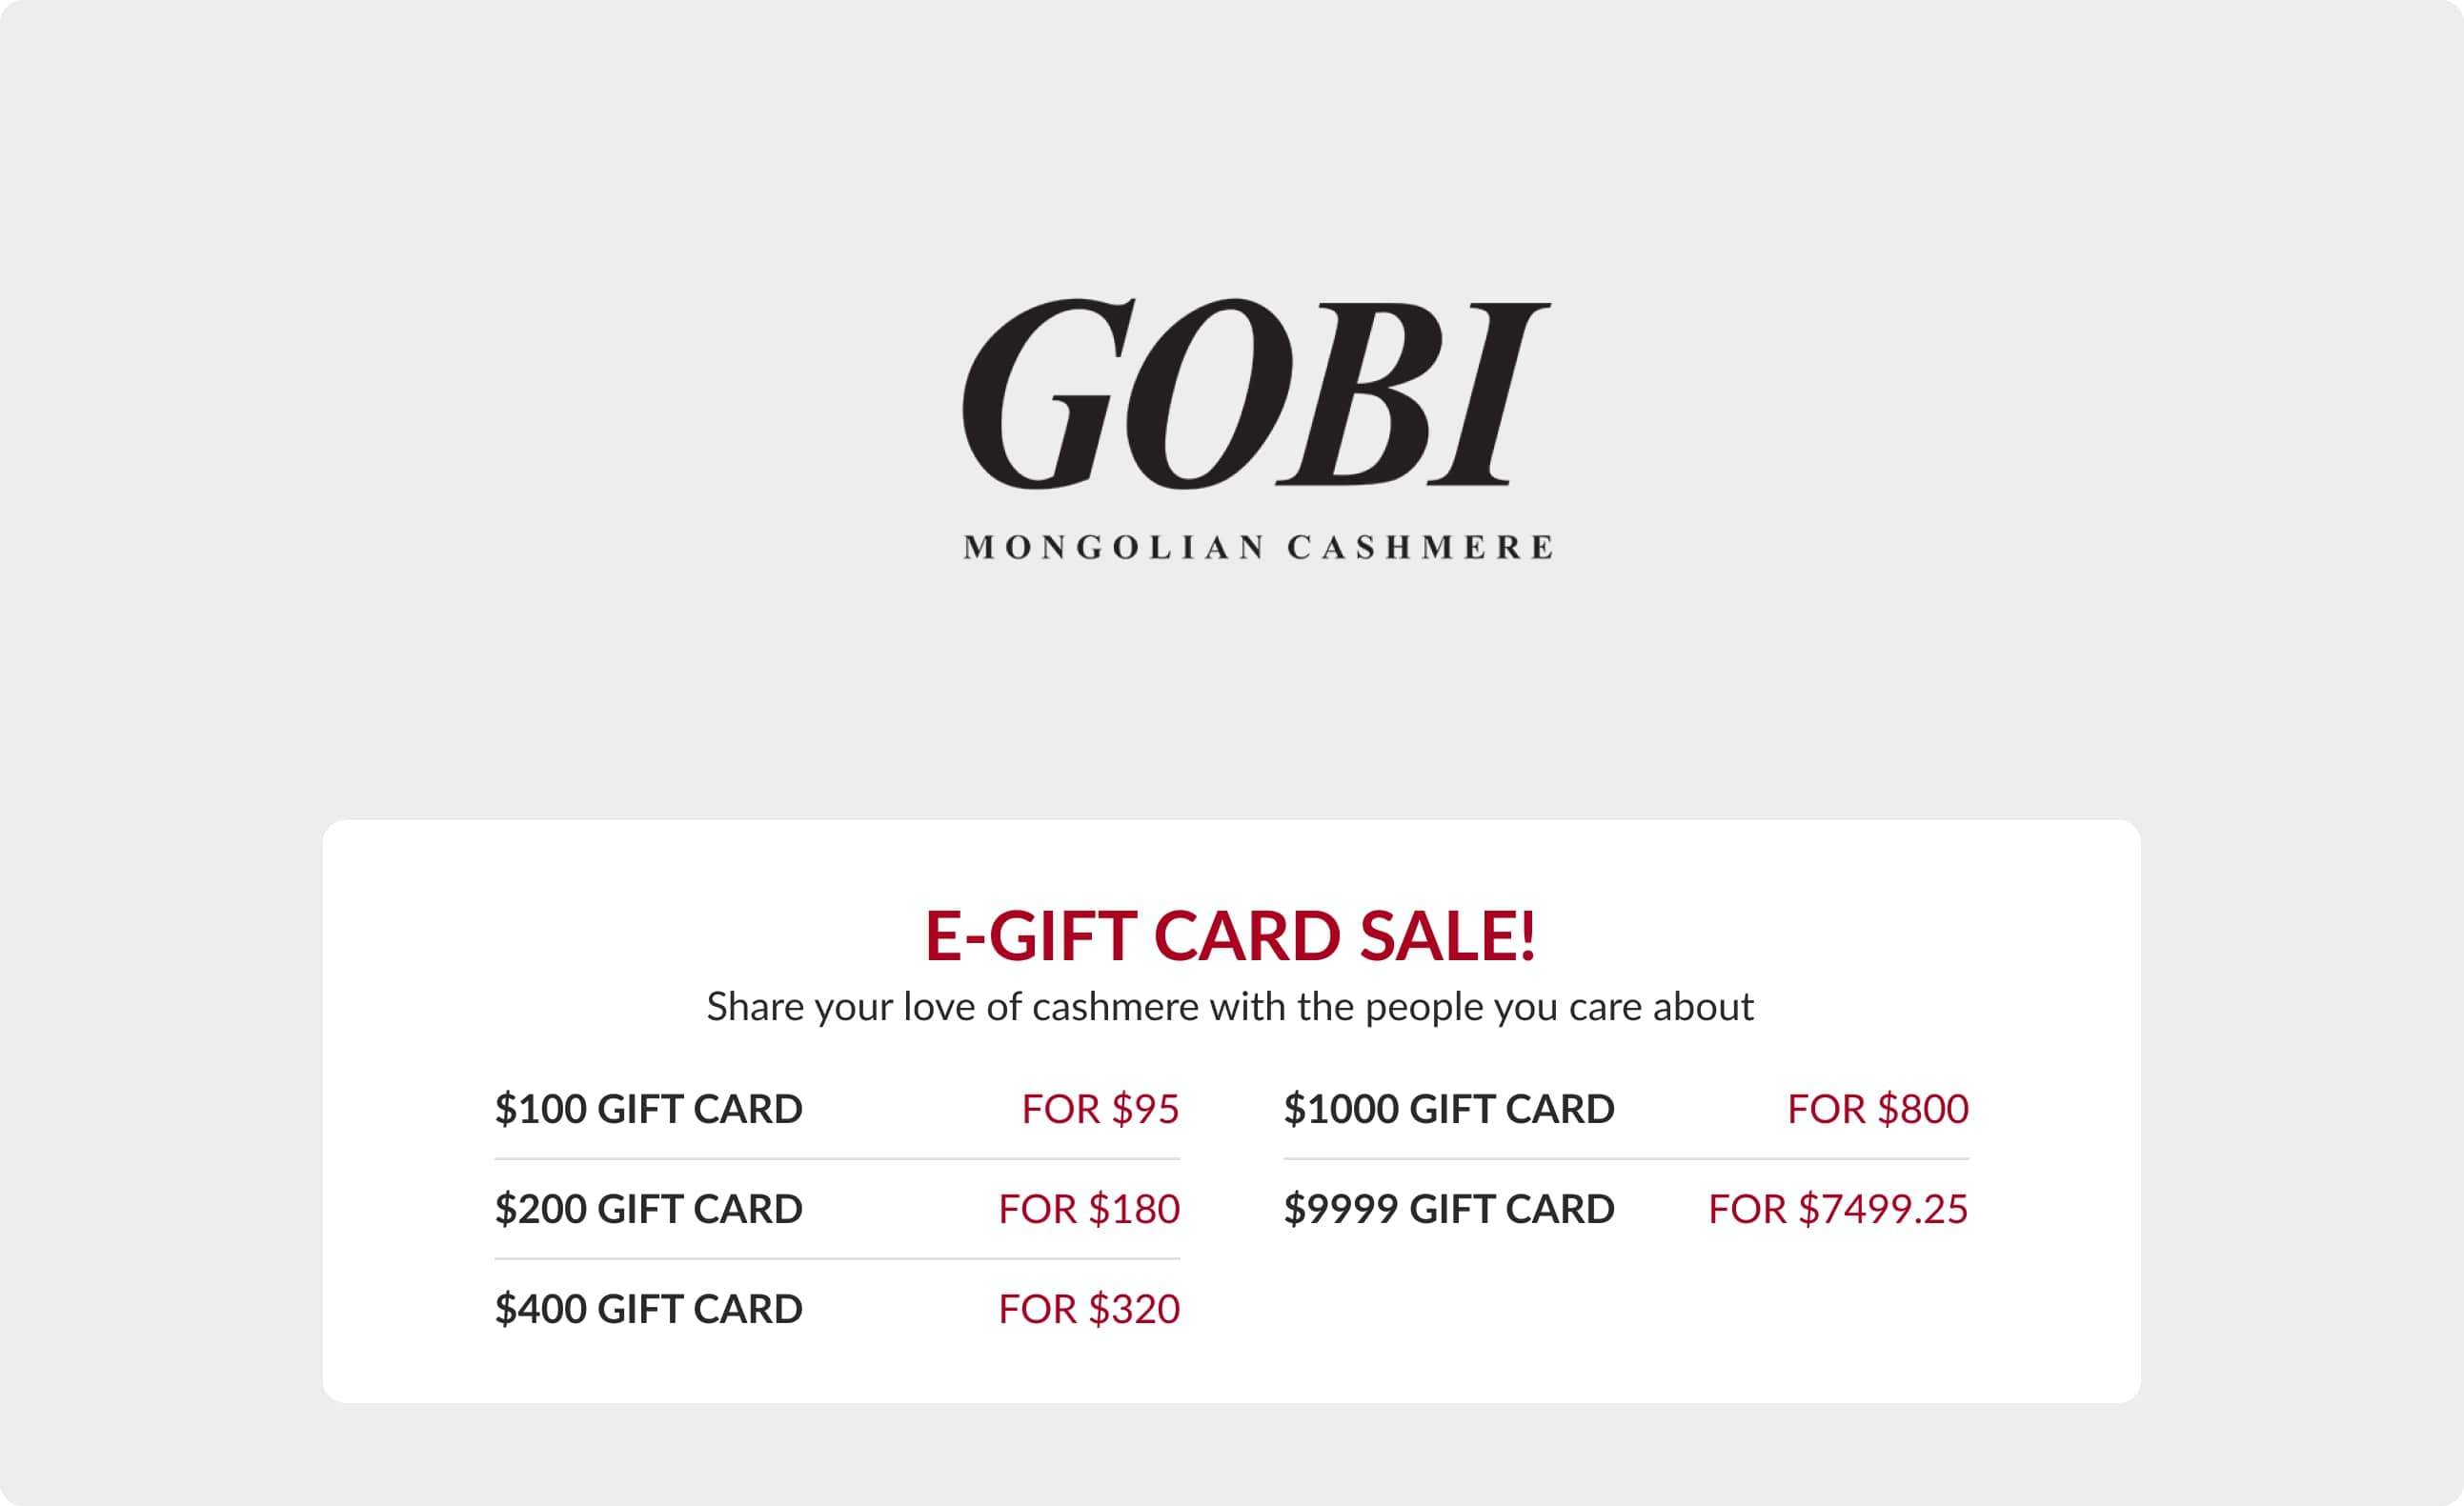 GiftCard product US - Get $100 gift card for $95